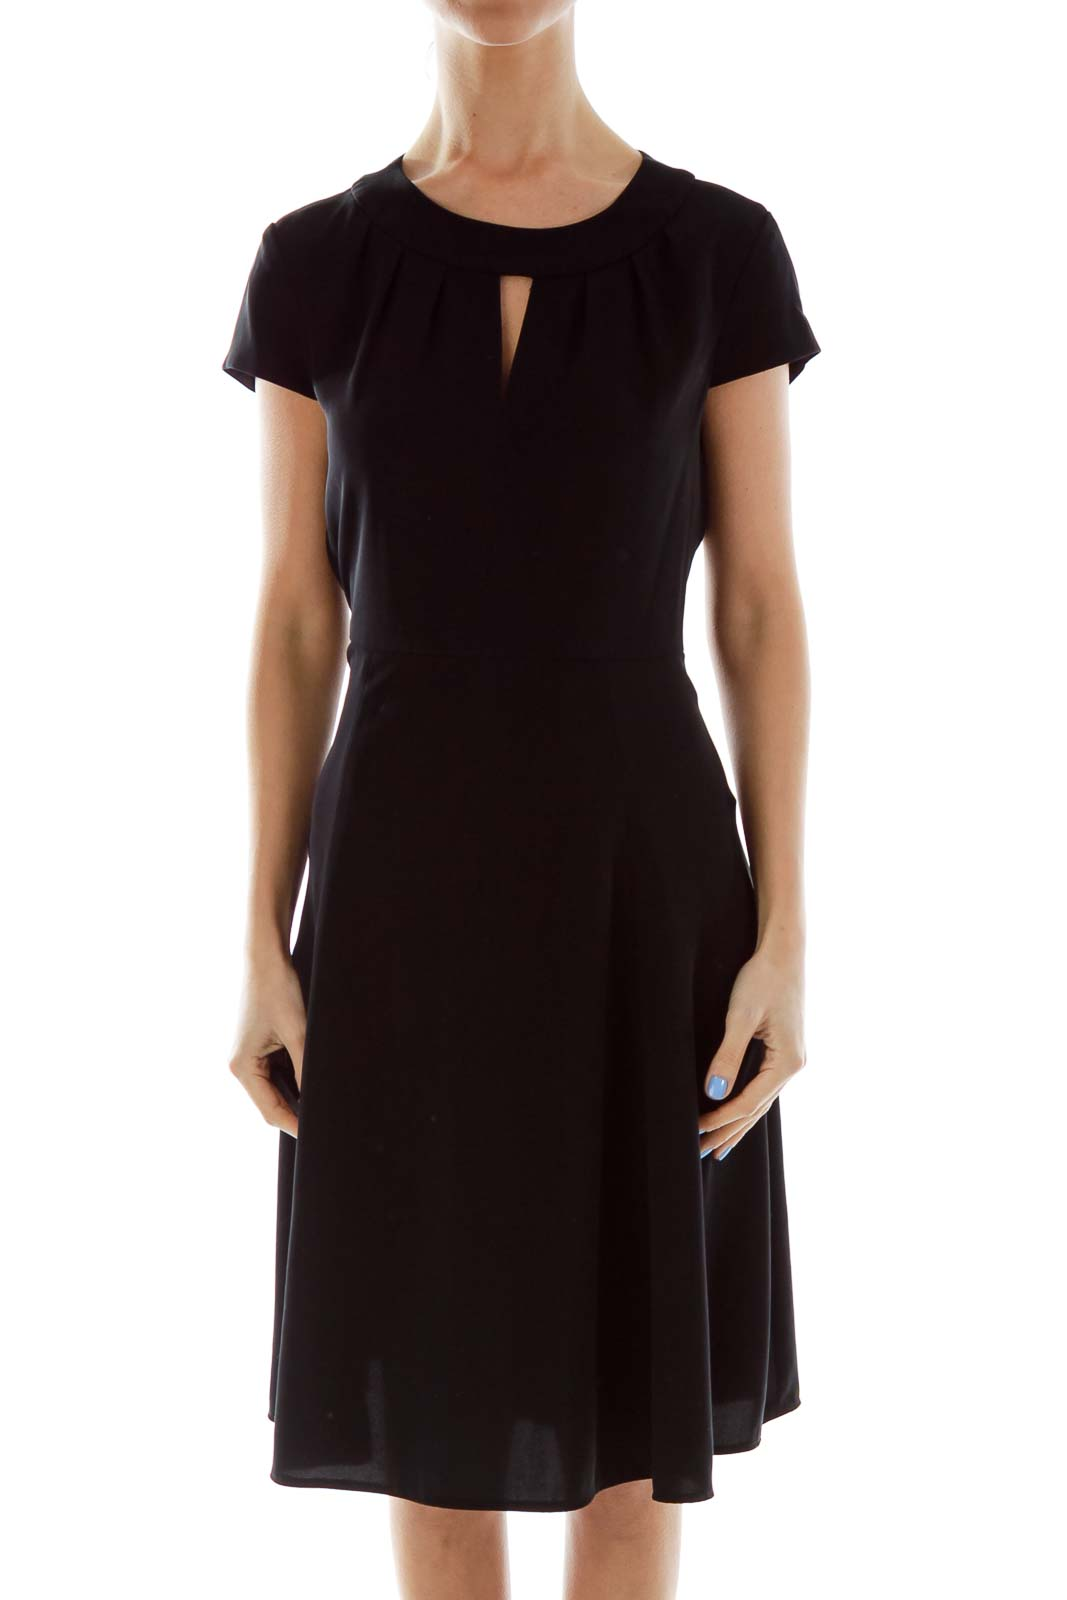 Black Fitted Work Dress